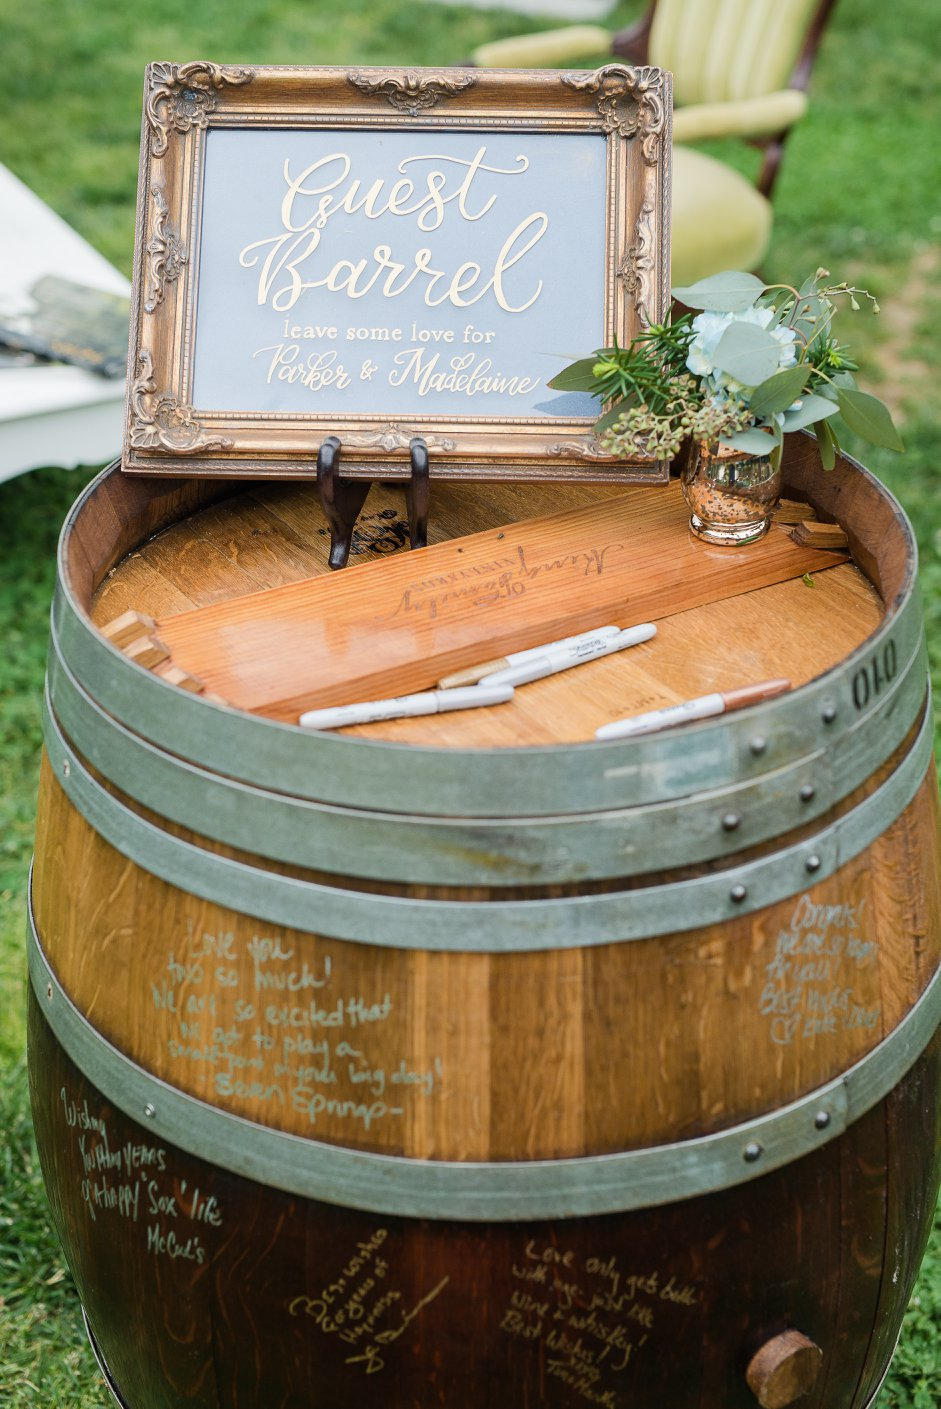 Navy blue and gold calligraphy guest barrel sign for a wedding at Seven Springs Farm in King William County Virginia as shot by Caiti Garter Photography.